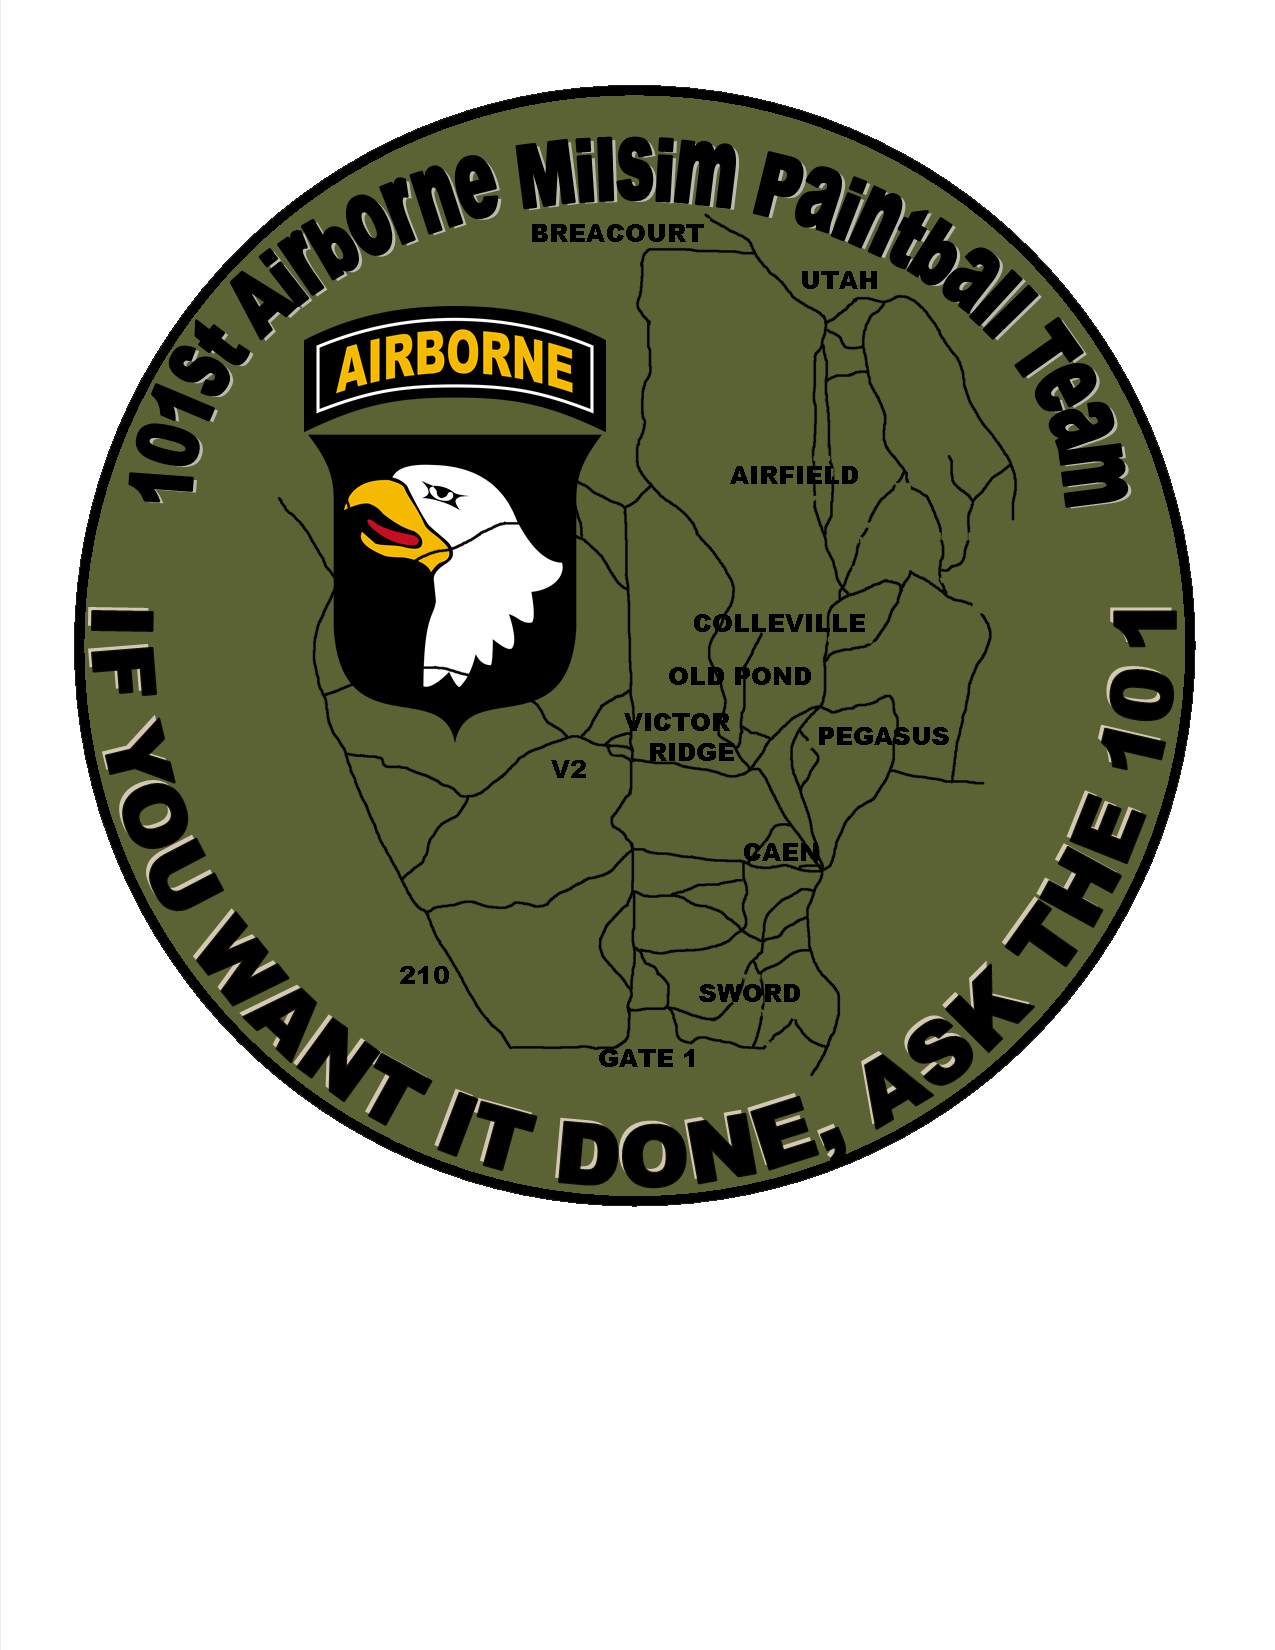 Custom 101st Airborne Paintball Team Patch